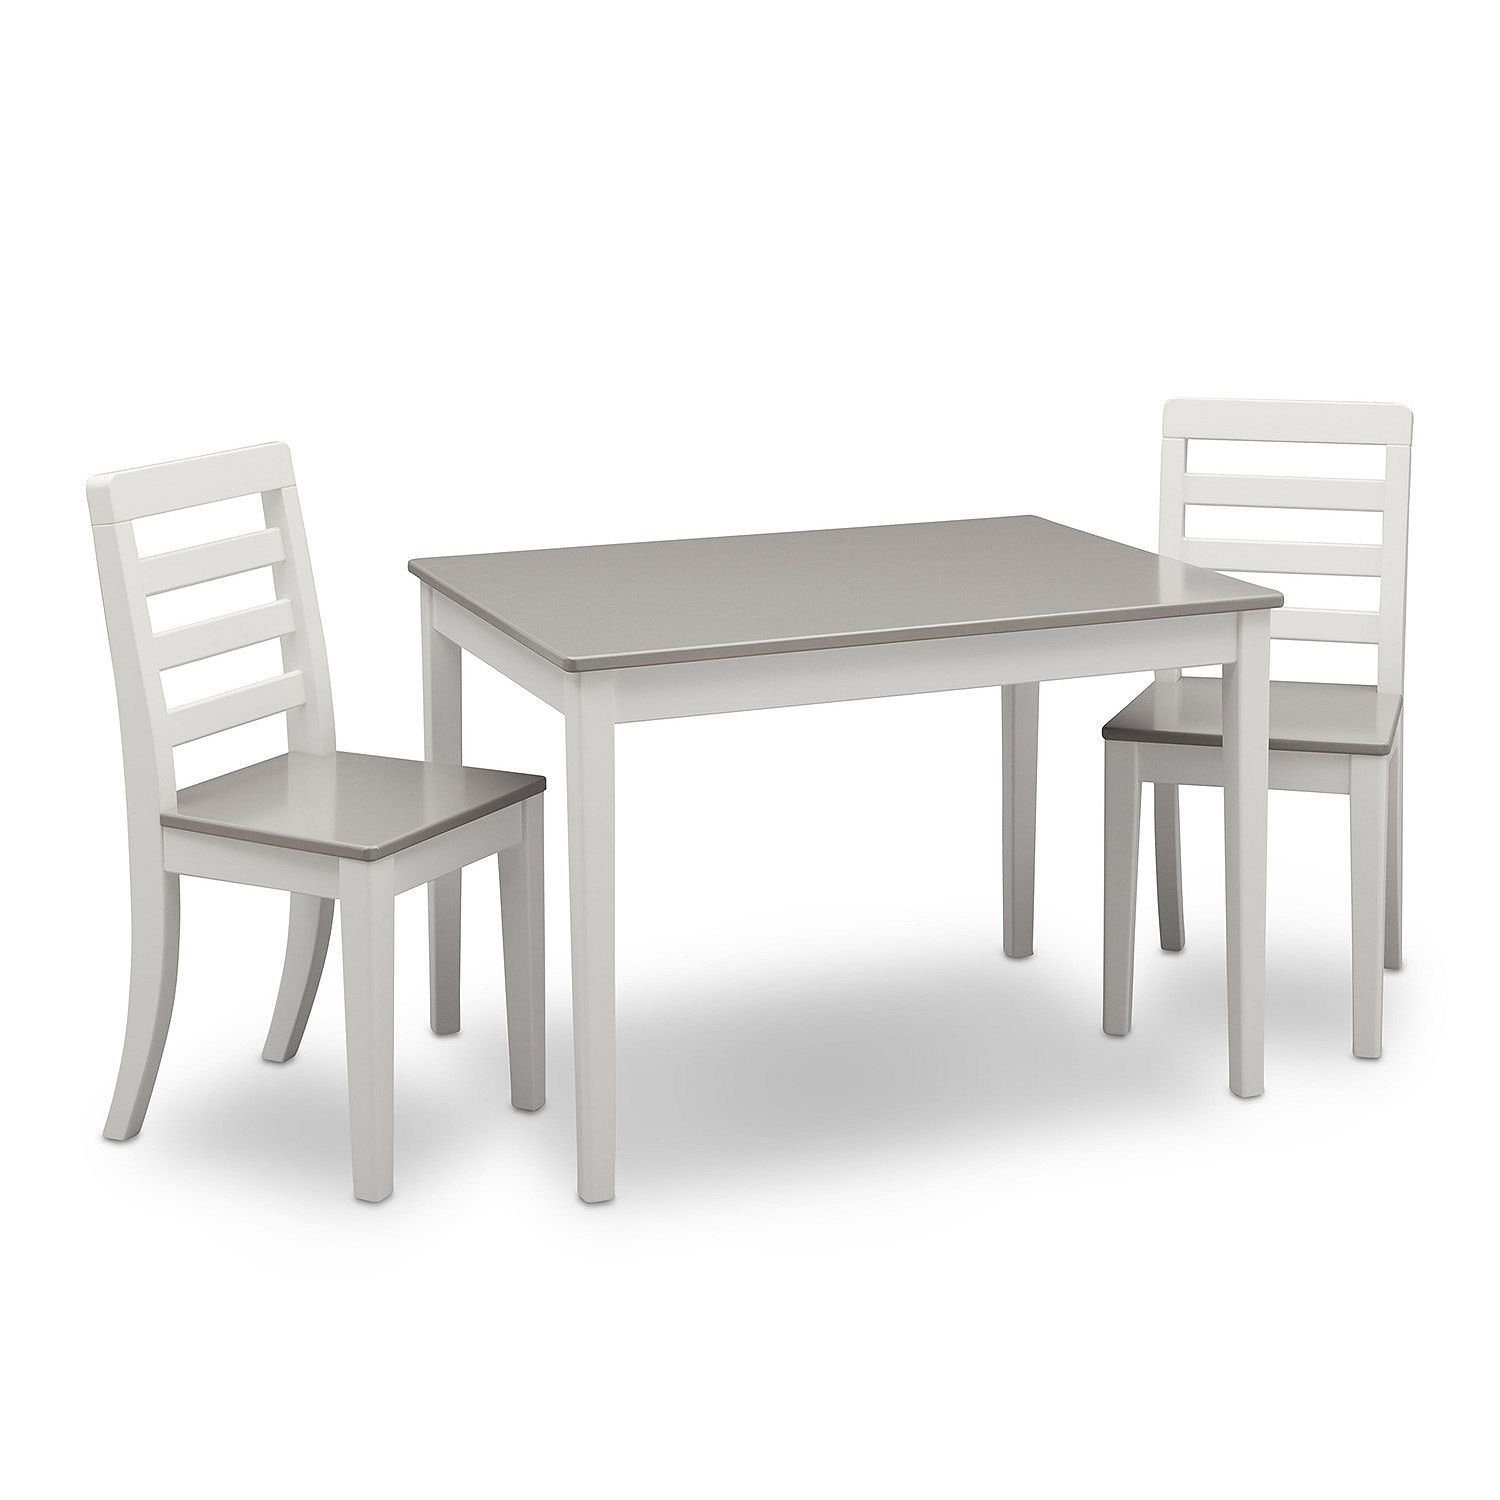 Delta Children Table and Chairs, 3-Piece Set (White and Grey) by Delta Children (Image #2)